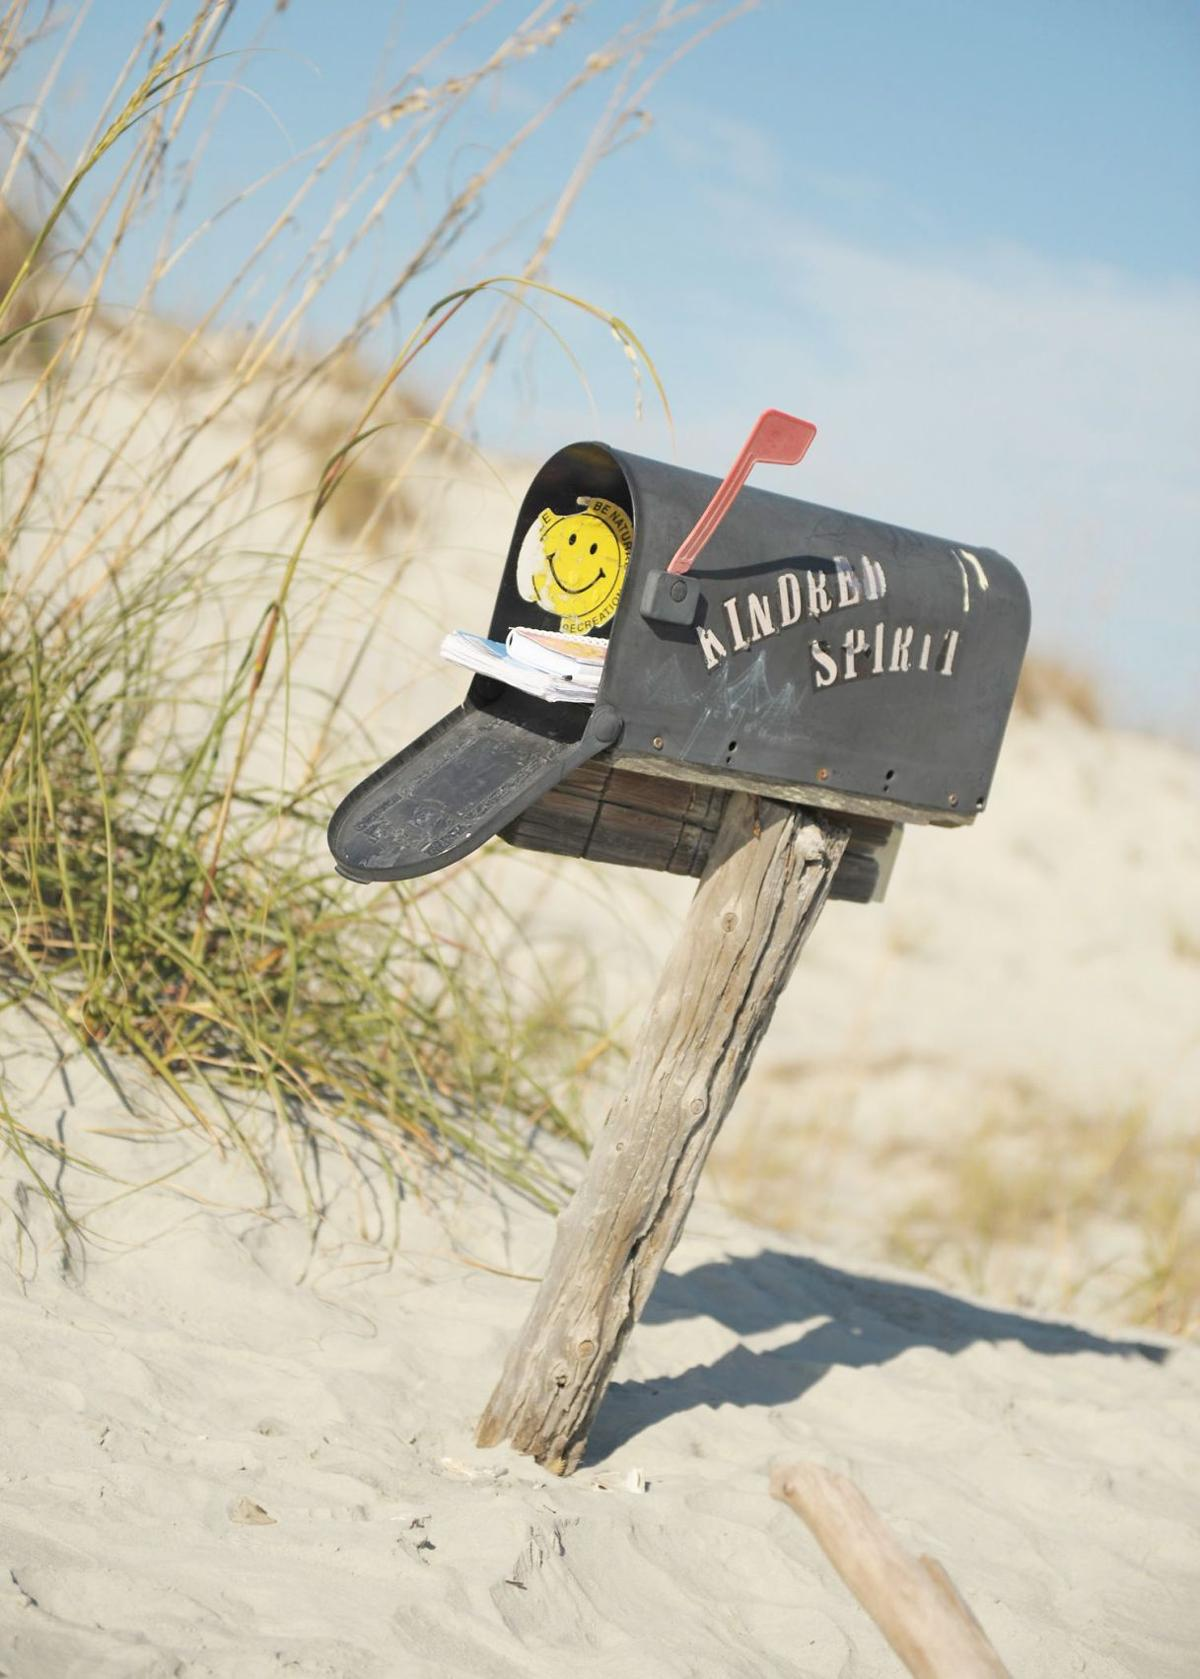 Life's just a laid-back beach in Brunswick County, N.C.